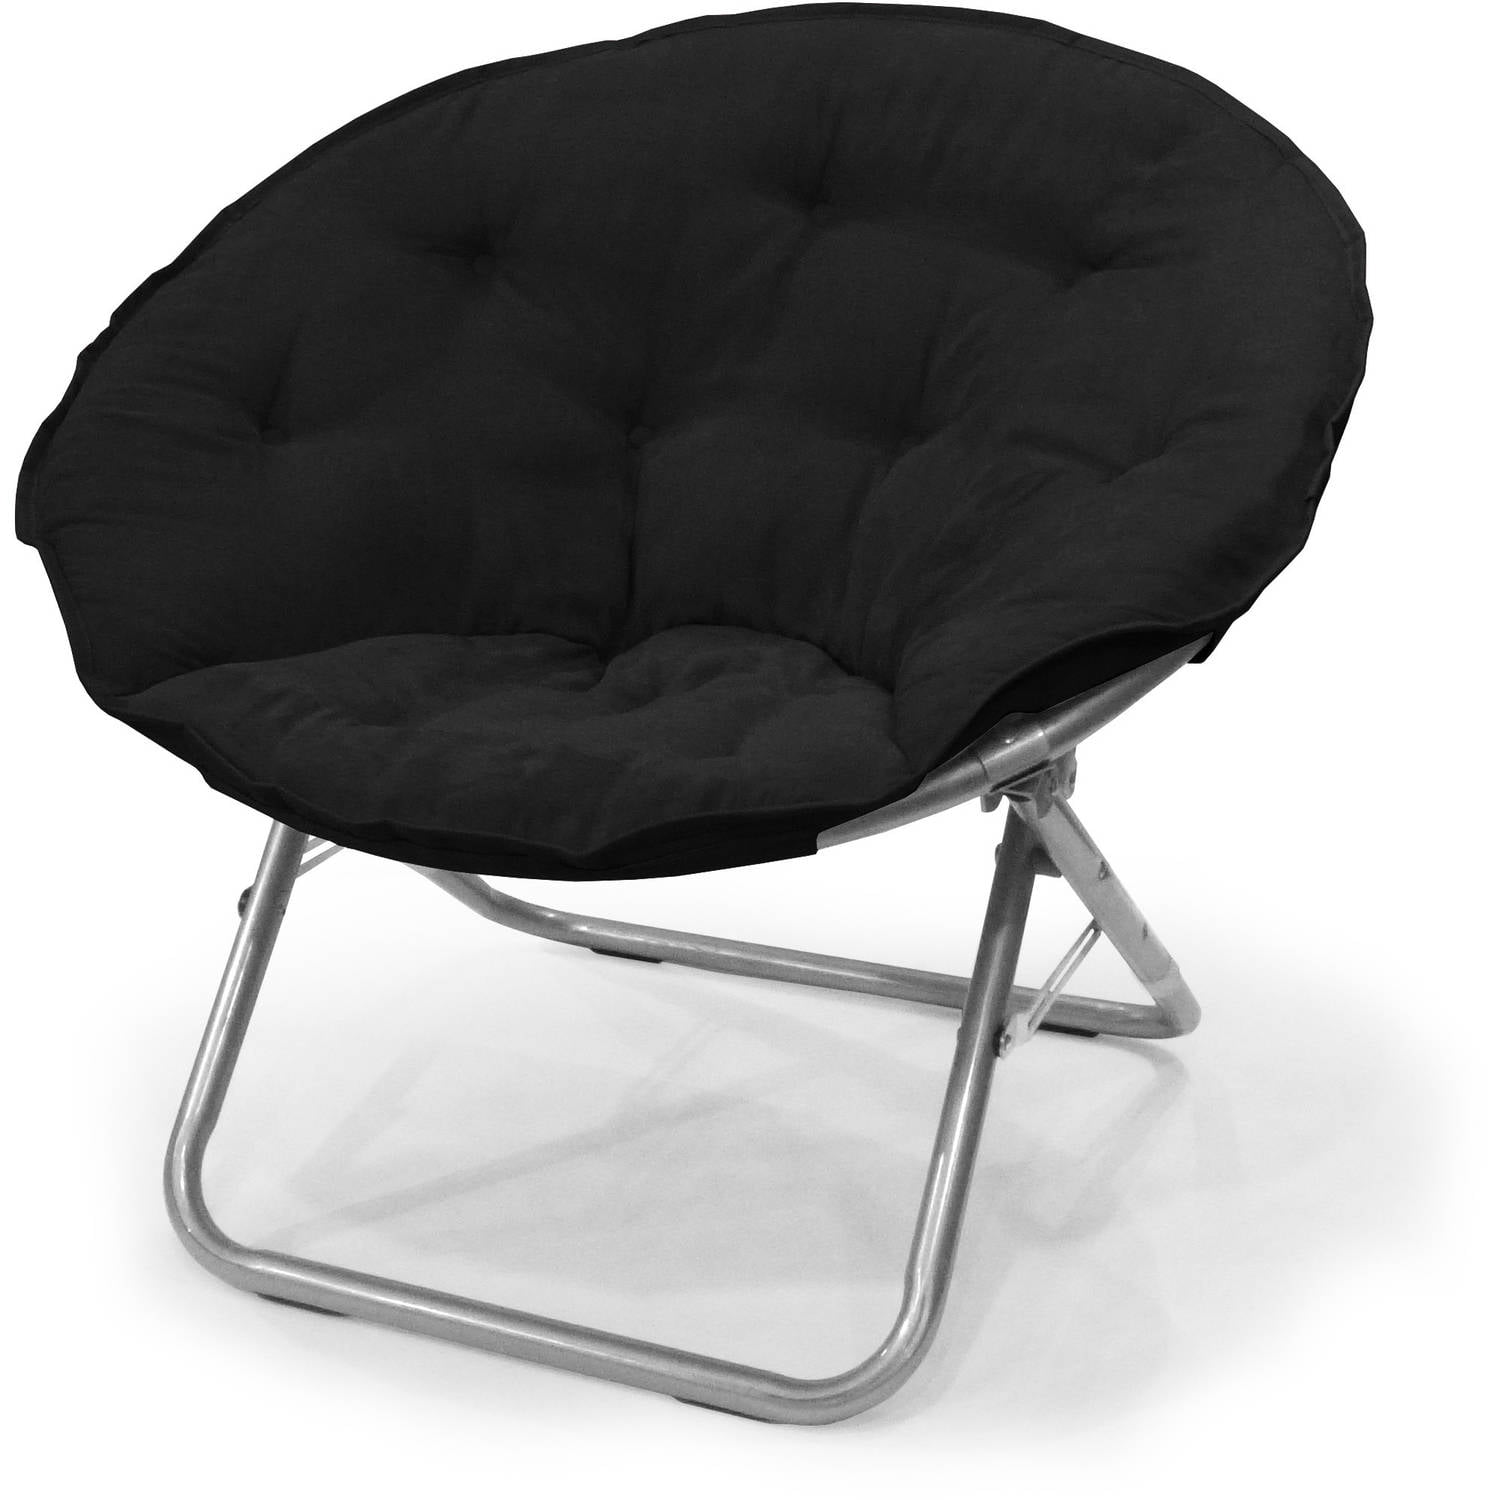 sc 1 st  Walmart & Mainstays Large Microsuede Saucer Chair Multiple Colors - Walmart.com